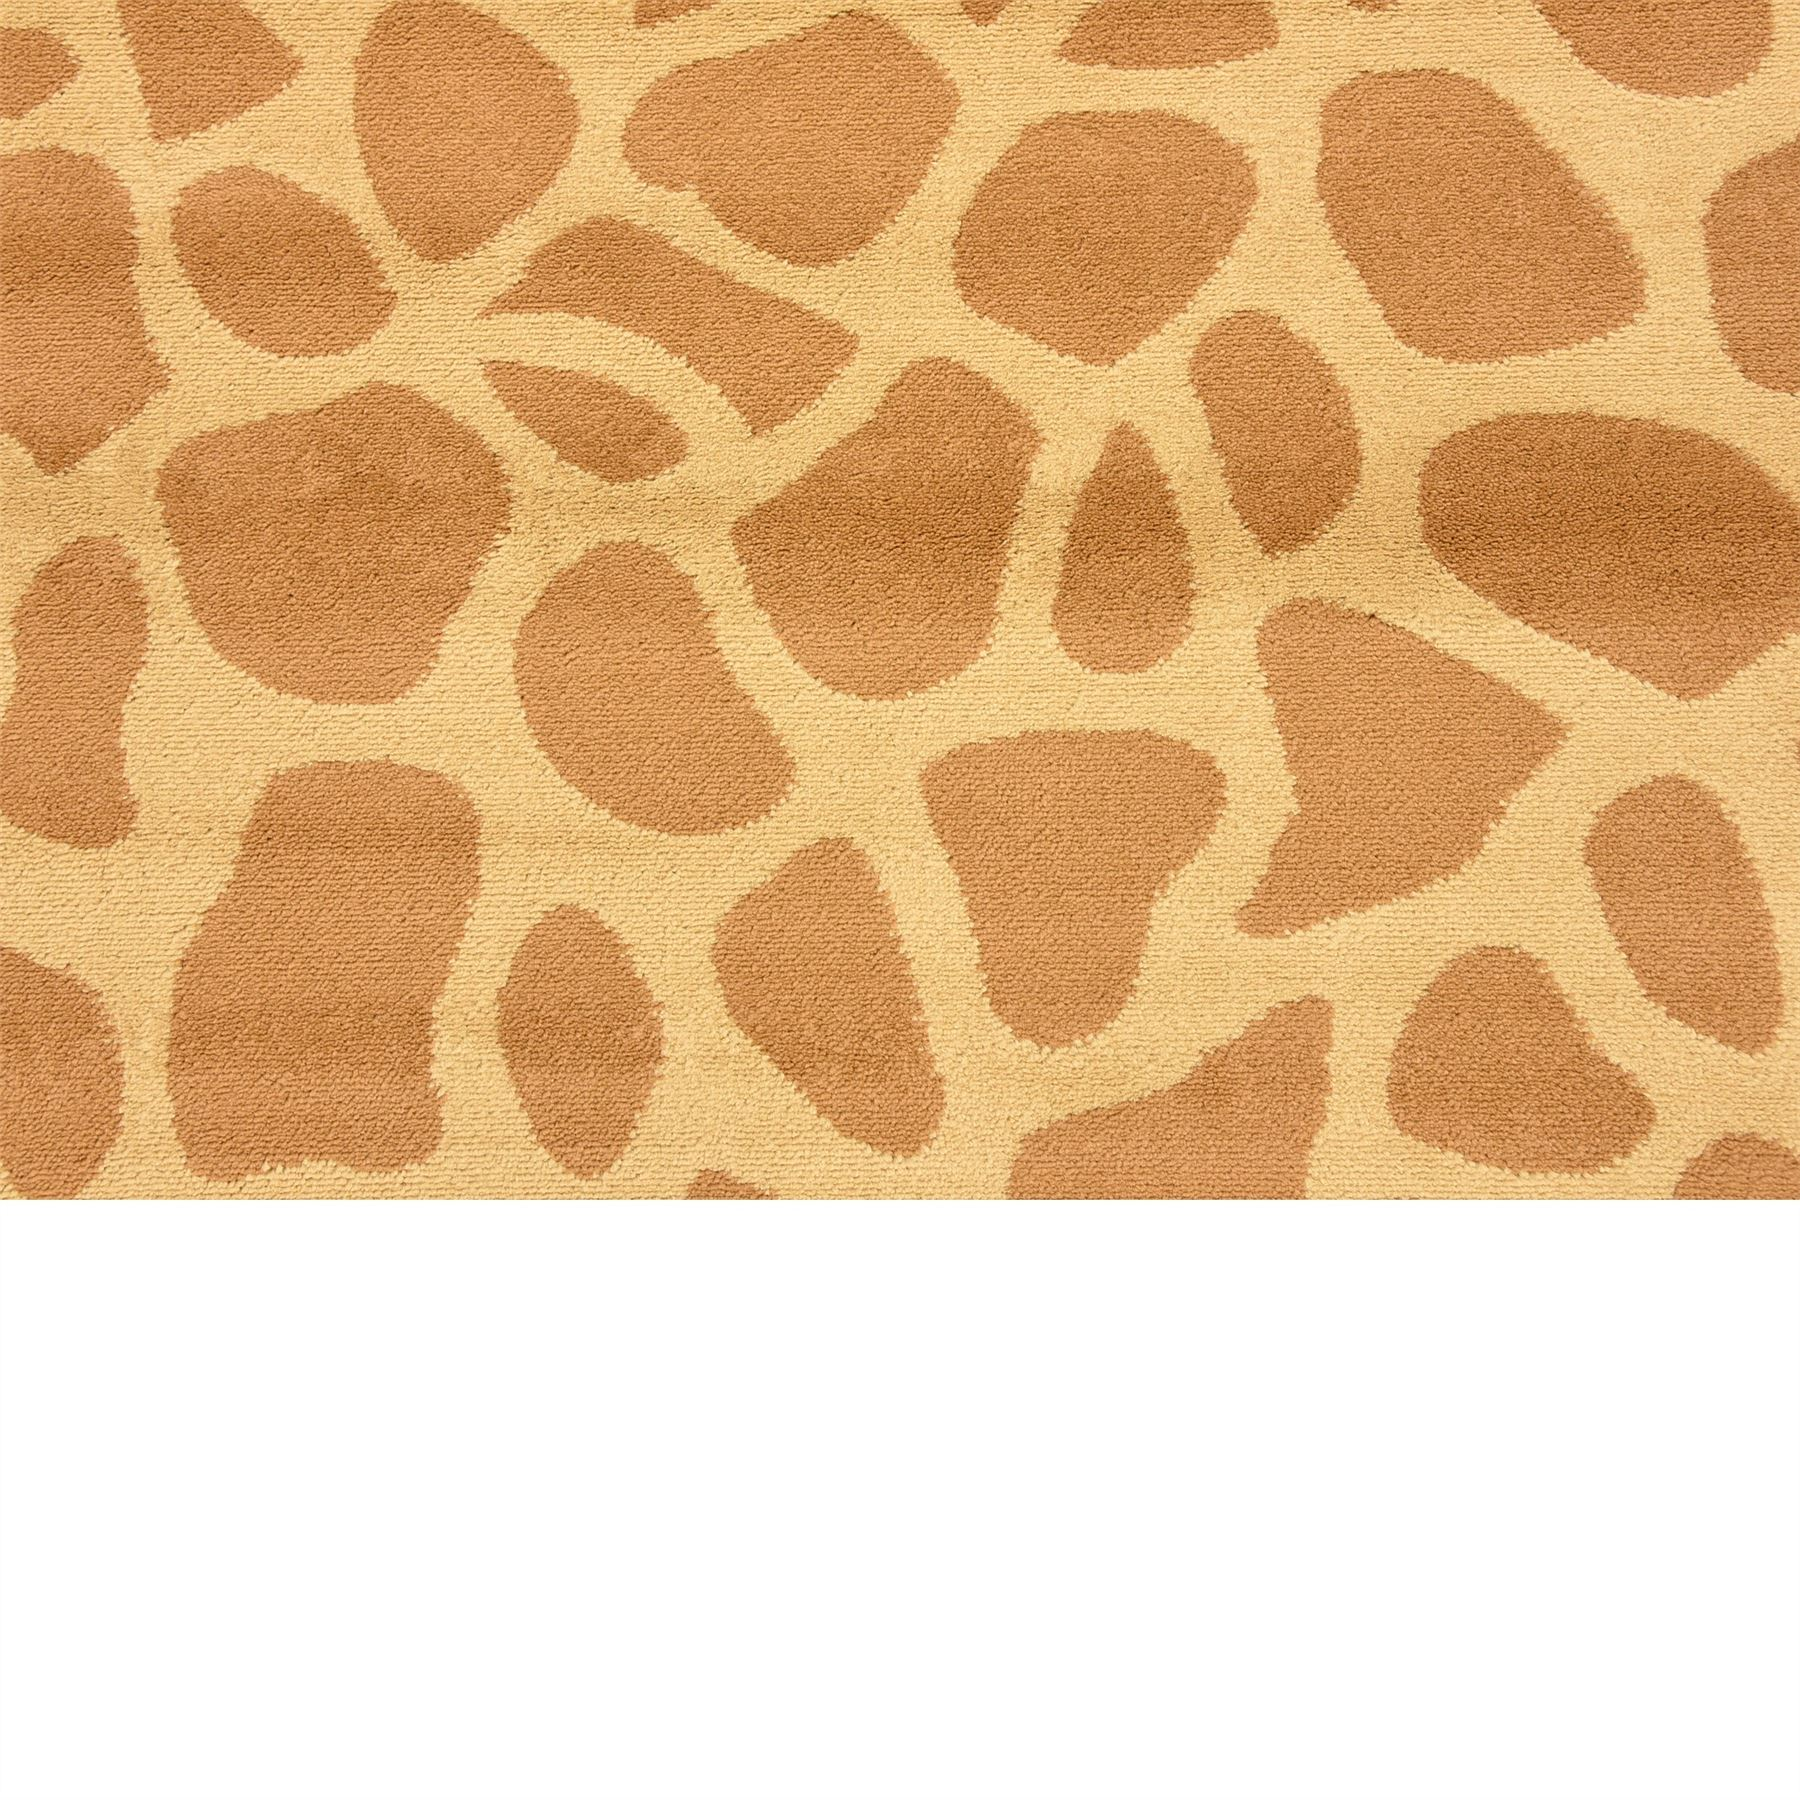 Giraffe Skin Modern Safari Style Area Rug Contemporary